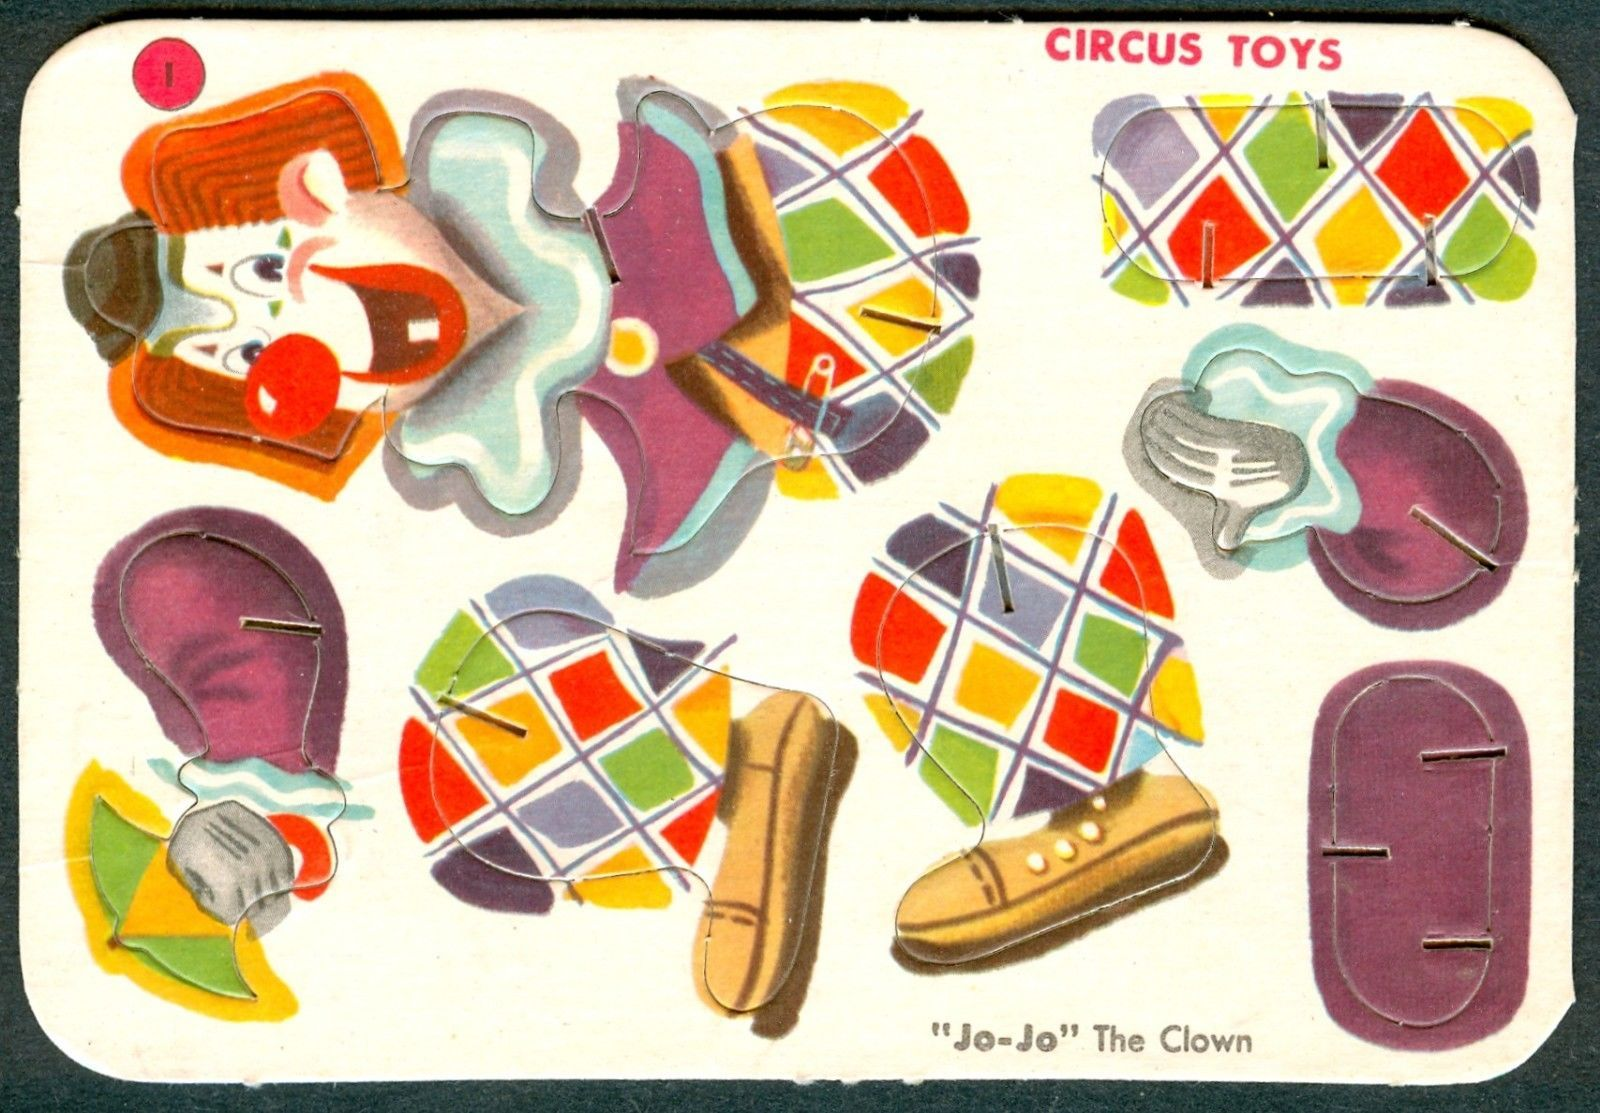 1956 Post Cereal Card Circus Toys Punch Out Jo Jo Clown F278 6 UNRECORDED Variat   eBay